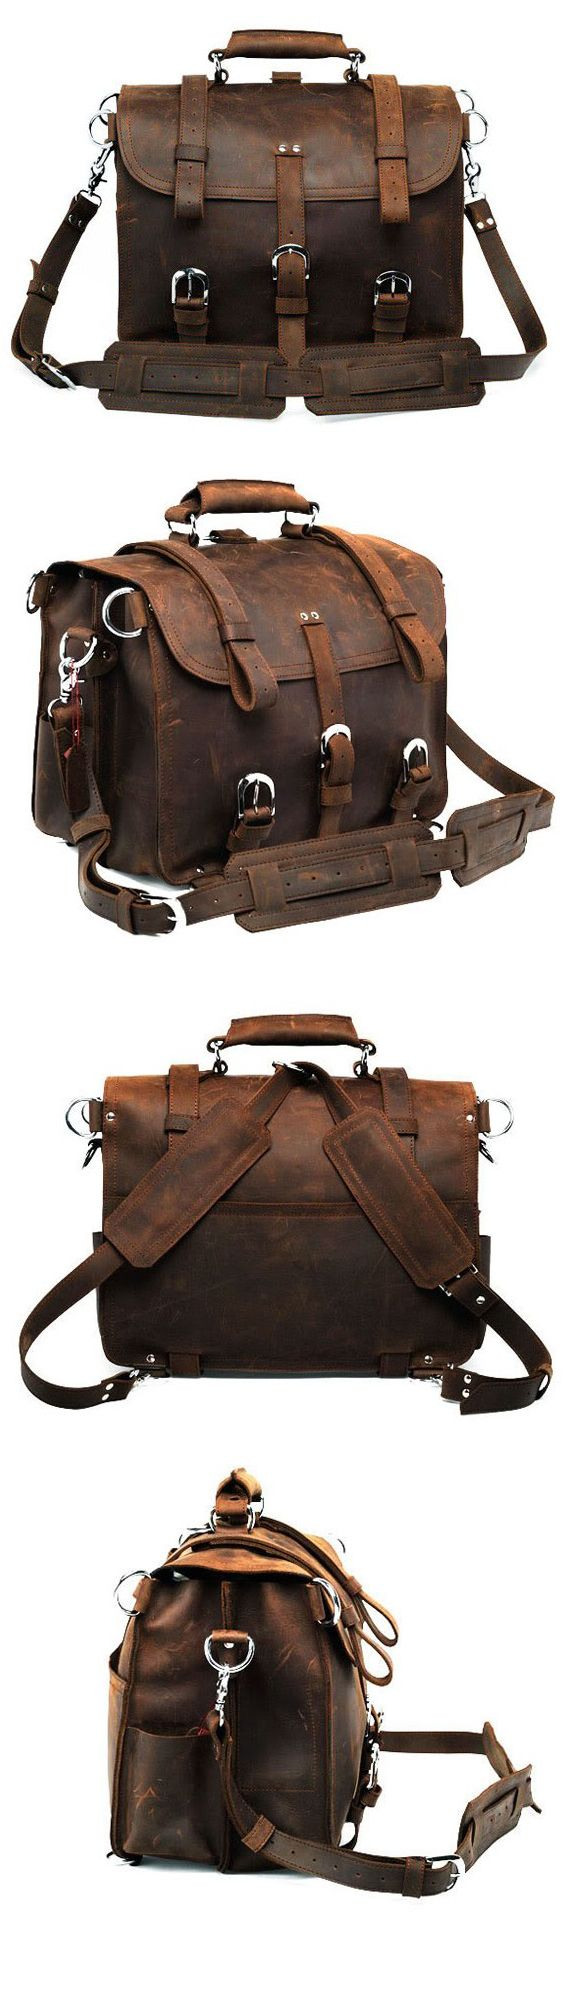 WOW Arrogance Vintage Classic Crazy Horse Leather Briefcase Handbag/Backpack/Travel Bag/Laptop Bag/Travel Duffle Bag